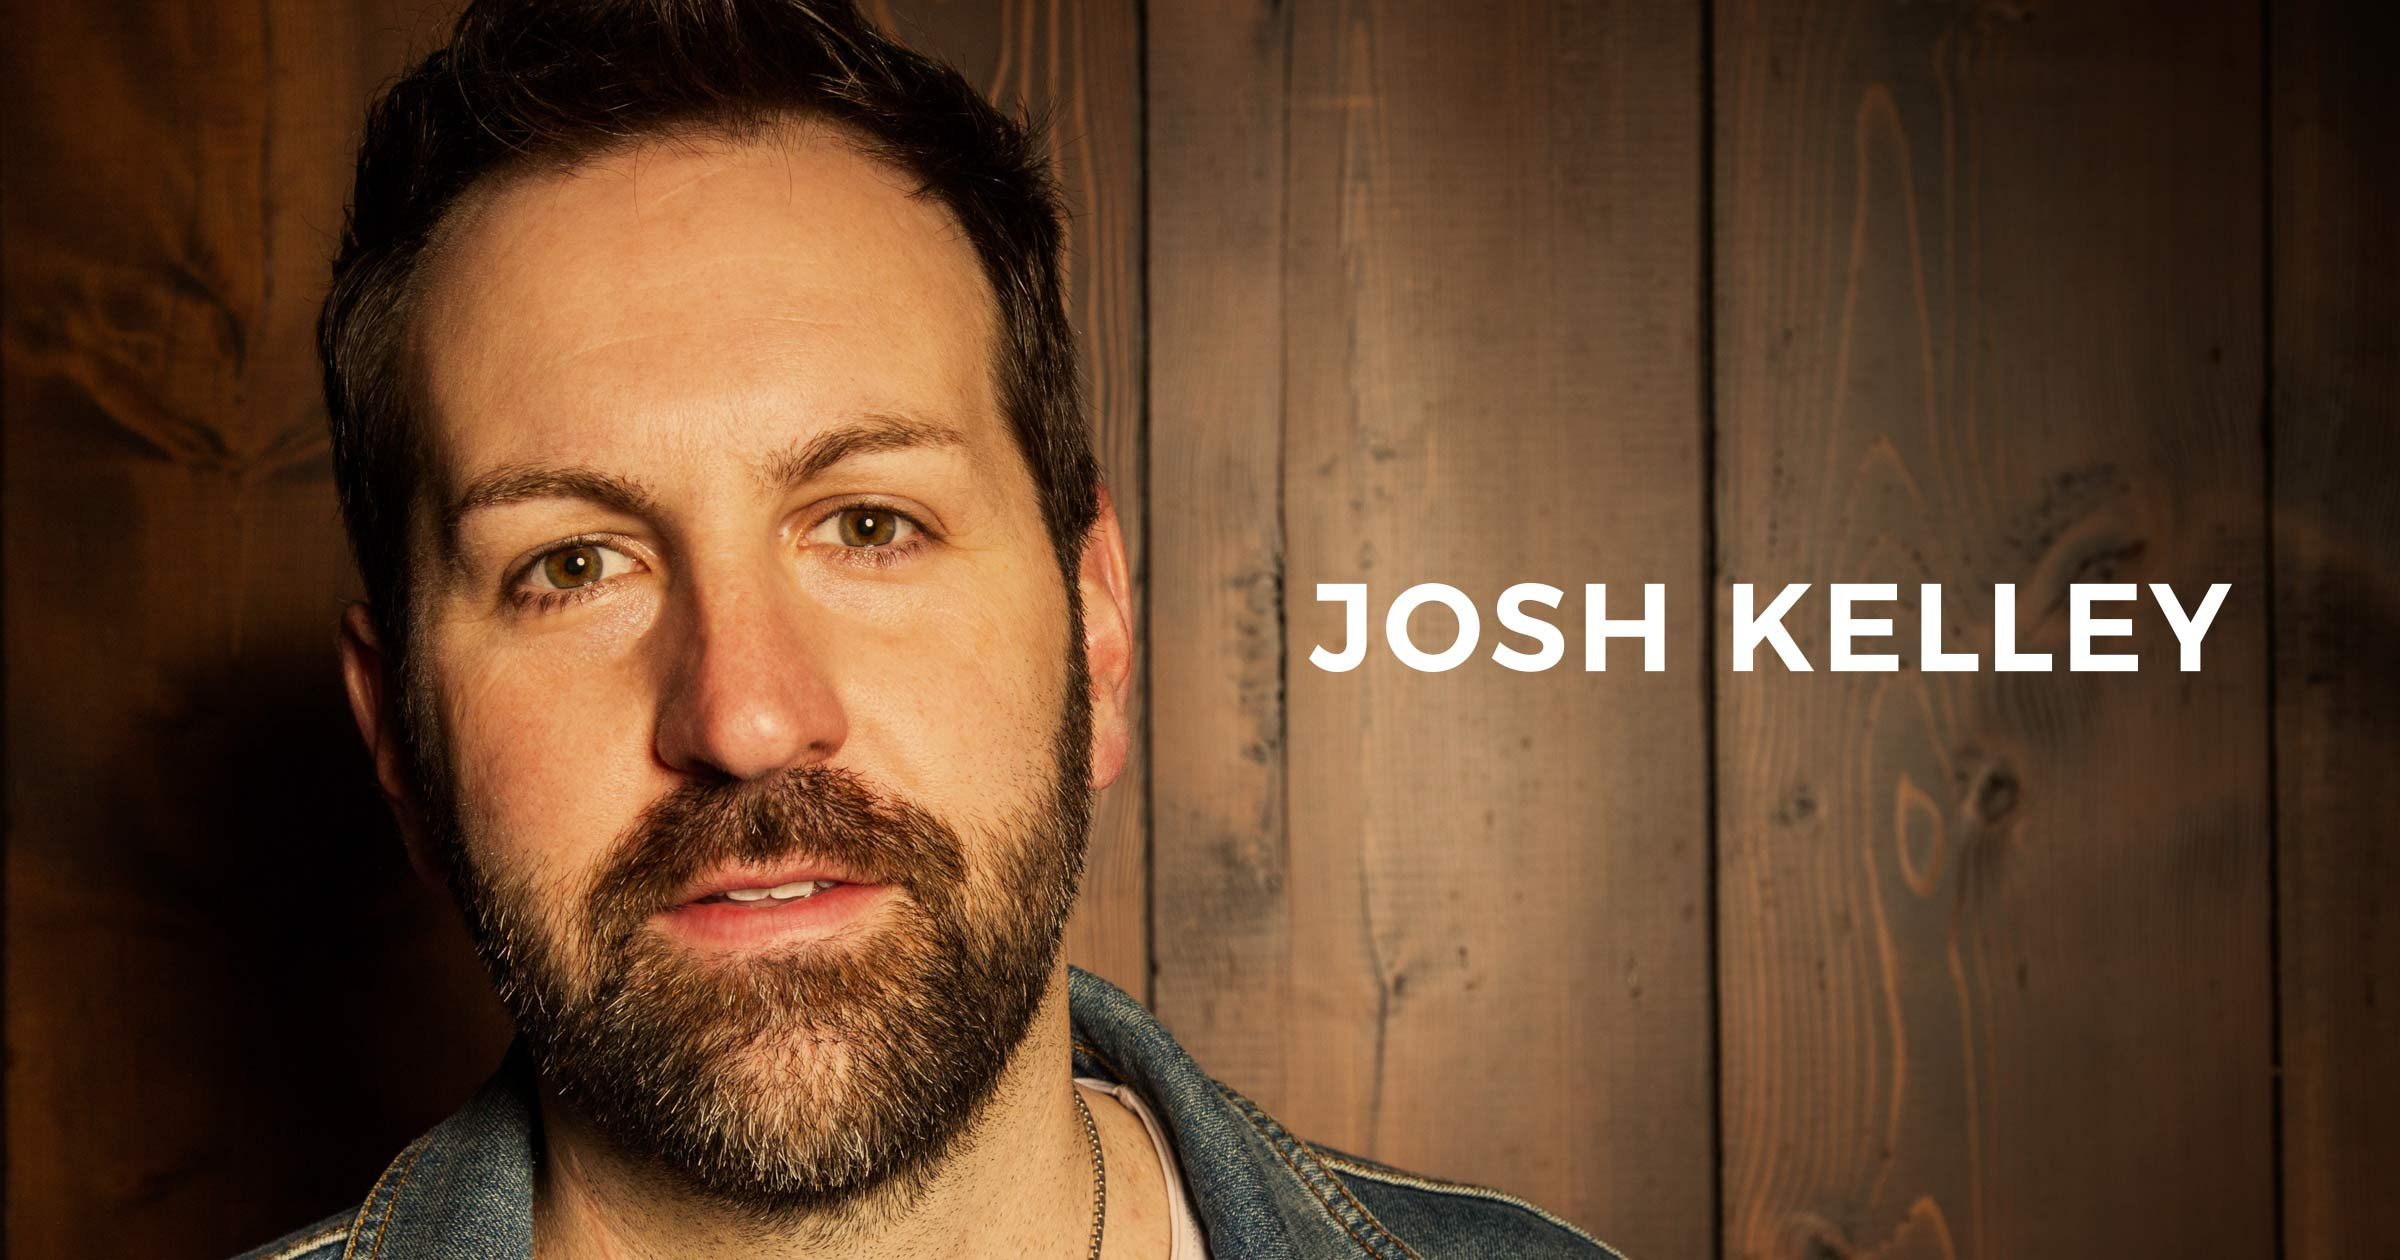 josh kelley boxrecjosh kelley - under the covers, josh kelley almost honest, josh kelley amazing, josh kelley insta, josh kelley boxrec, josh kelly ray robinson, josh kelly boxrec, josh kelly highlights, josh kelley only you, josh kelley share this day, josh kelley share this day mp3, josh kelley only you video, josh kelley cain and abel, joshua kelley highlights, josh kelley singer, josh kelley katherine heigl, josh kelly actor, josh kelly boxer, josh kelly instagram, josh kelly vs robinson